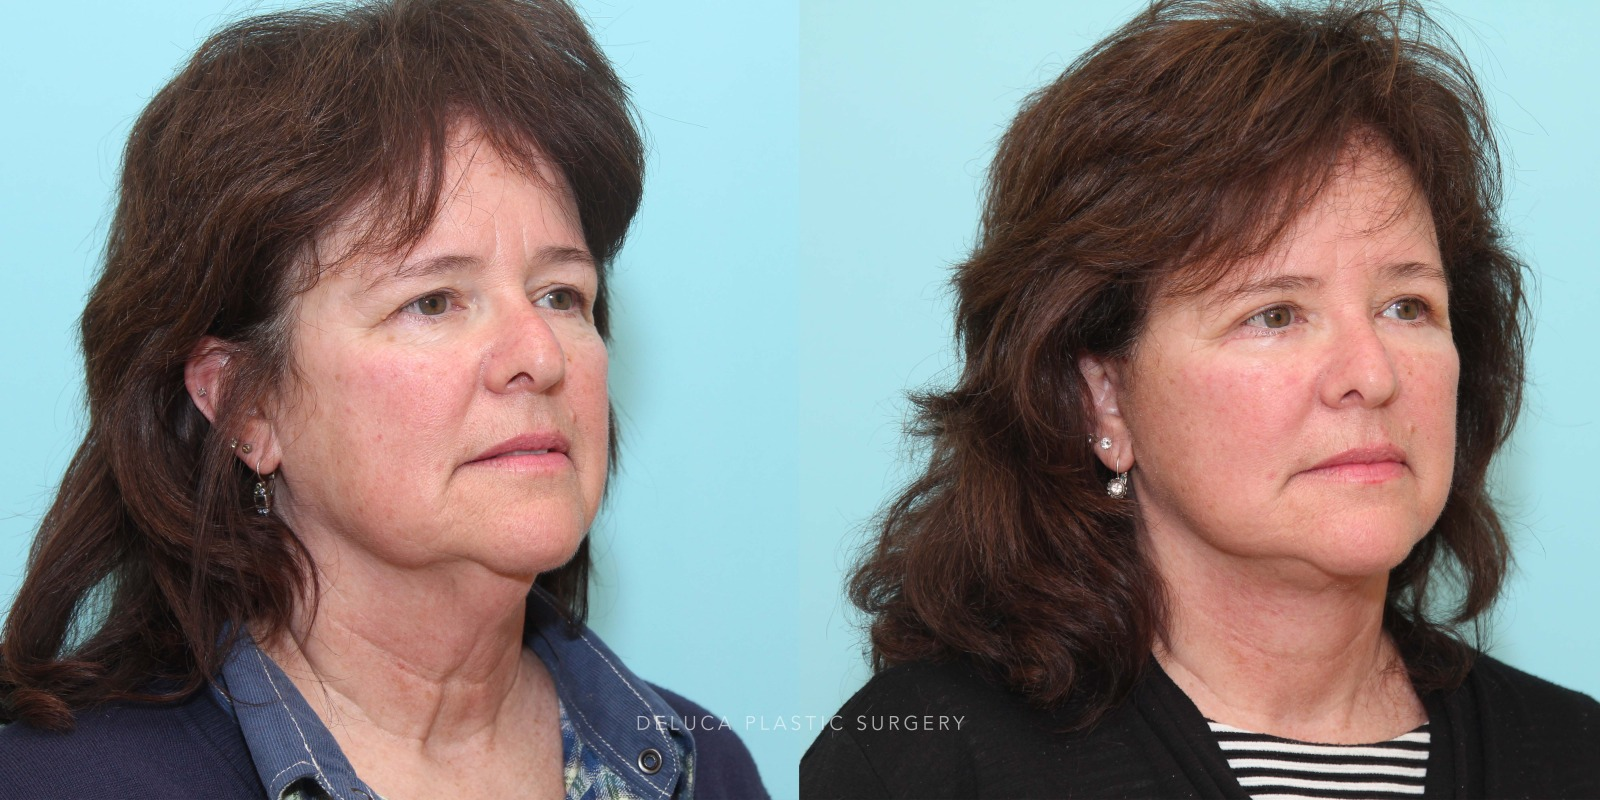 57 year old Face and Neck Lift and Upper and Lower Eyelid Blepharoplasty